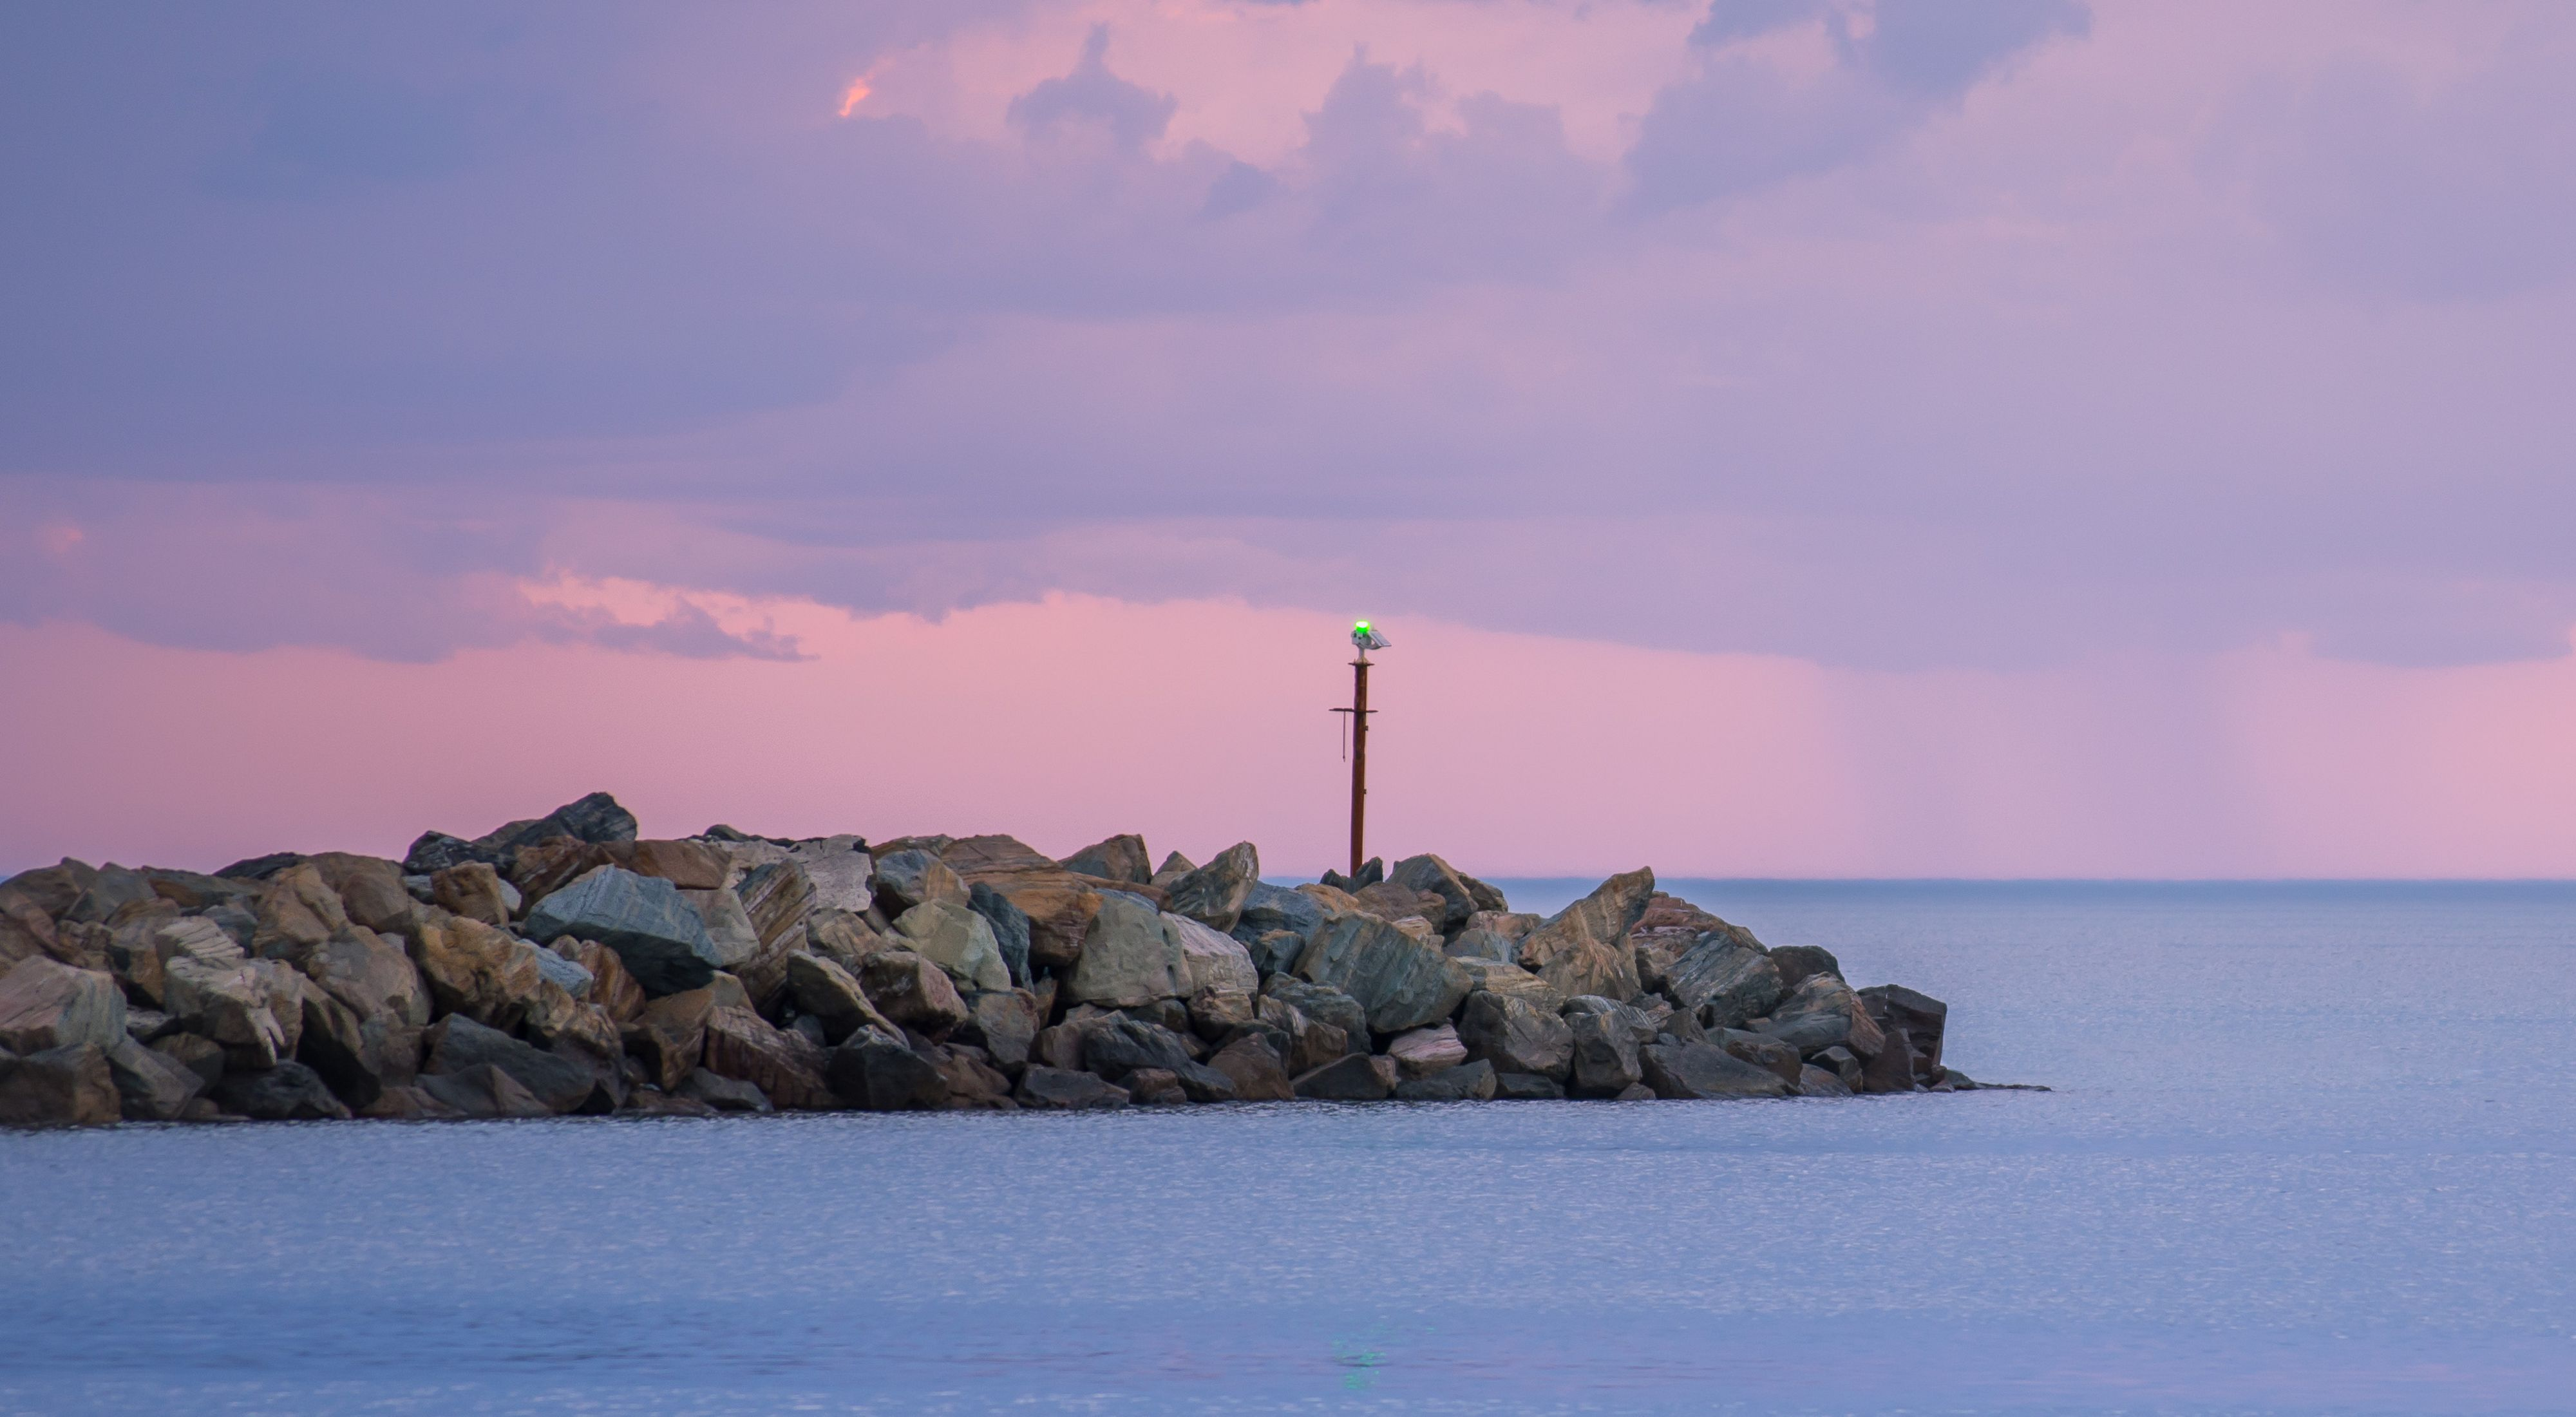 Photo competition 2017 submission of seamore rocks in South Australia